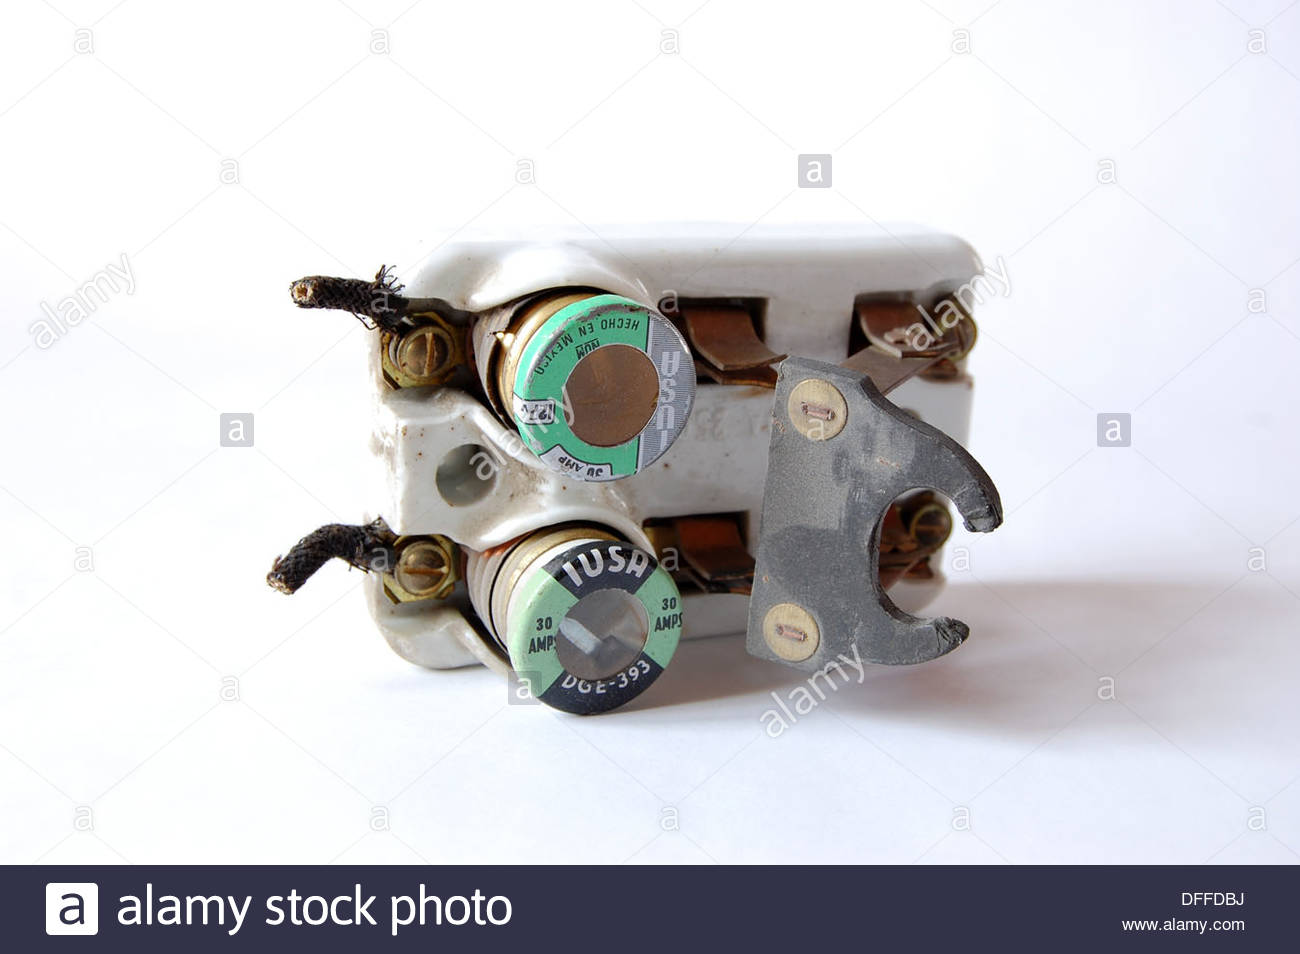 Vintage 60 Amp Fuse Box Wiring Library Old Electrical Boxes 1950s Ceramic Circuit Breaker With Fuses And Knife Switch Plain Background Natural